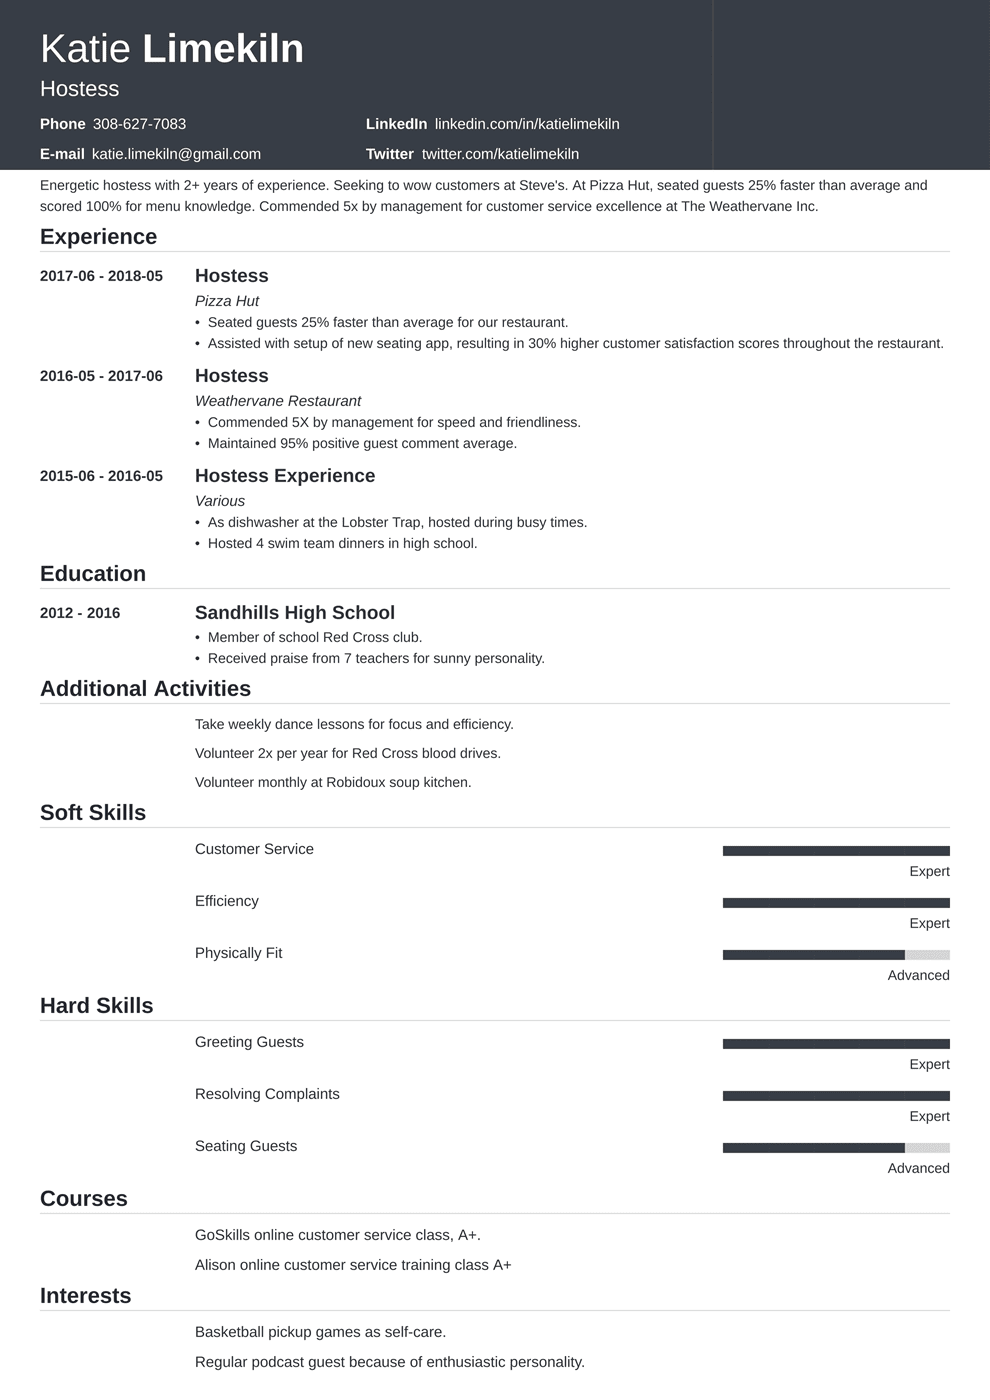 Hair Stylist Resume: Samples and Full Writing Guide [20+ ...